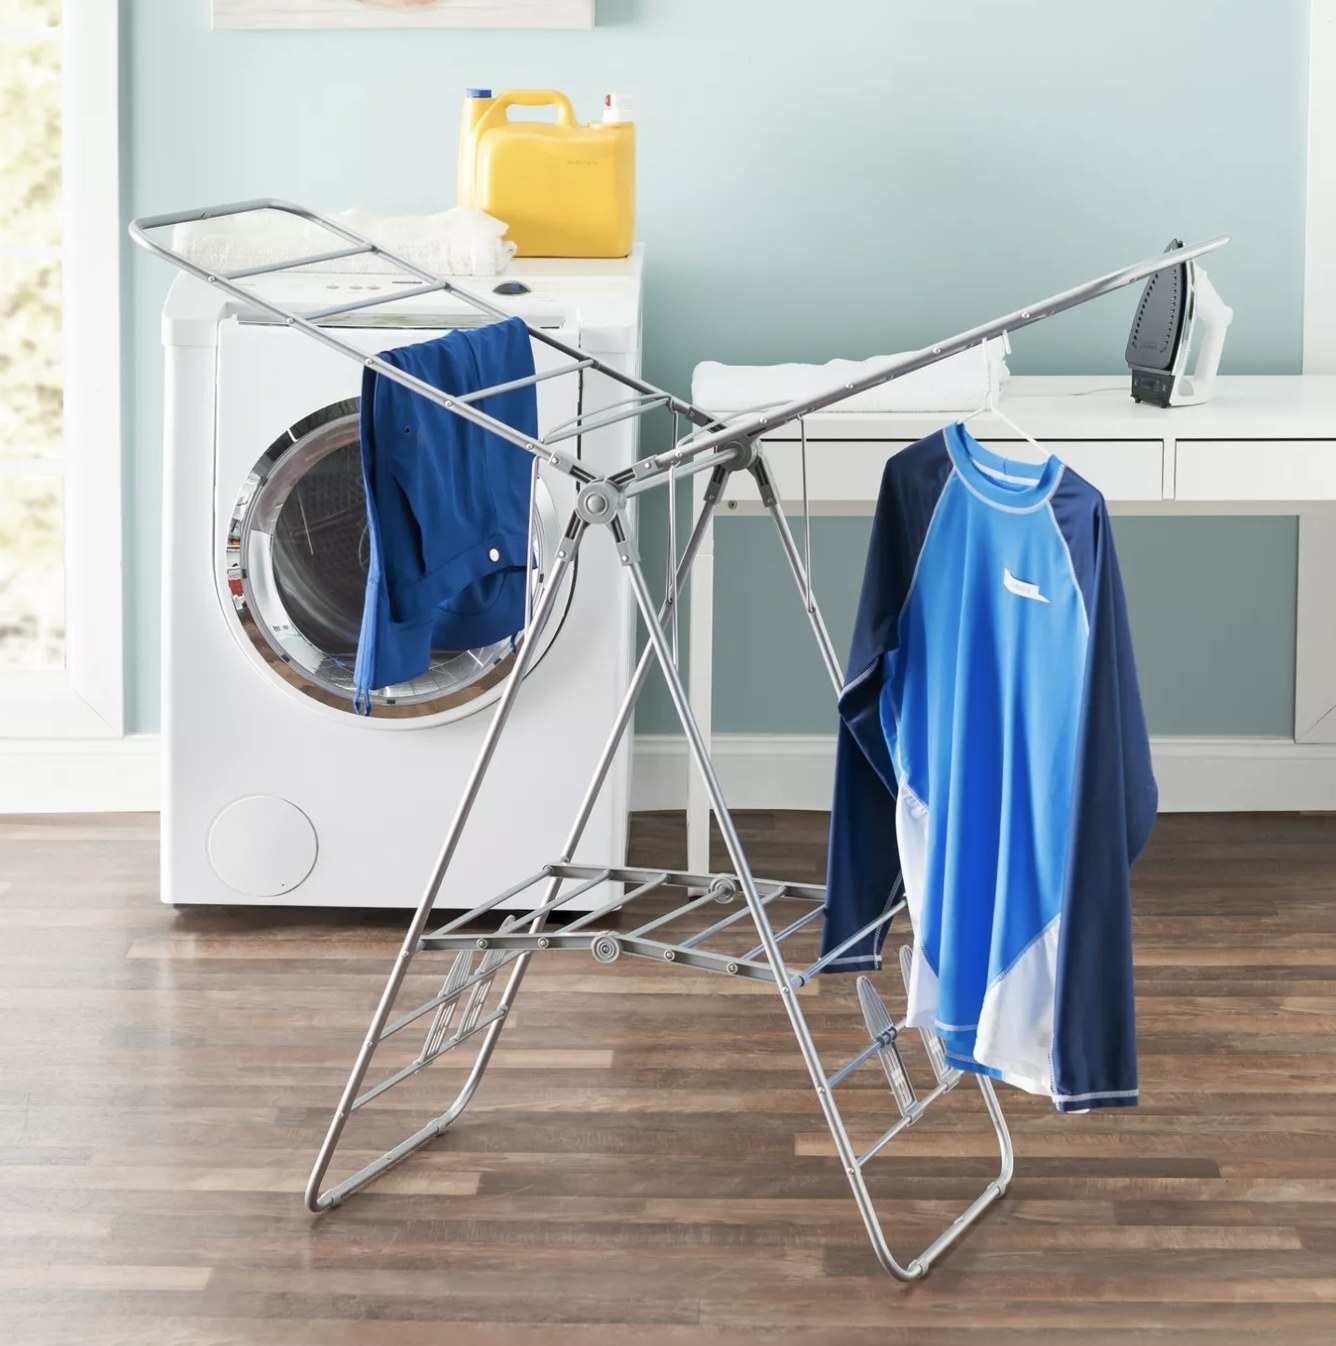 the silver laundry rack